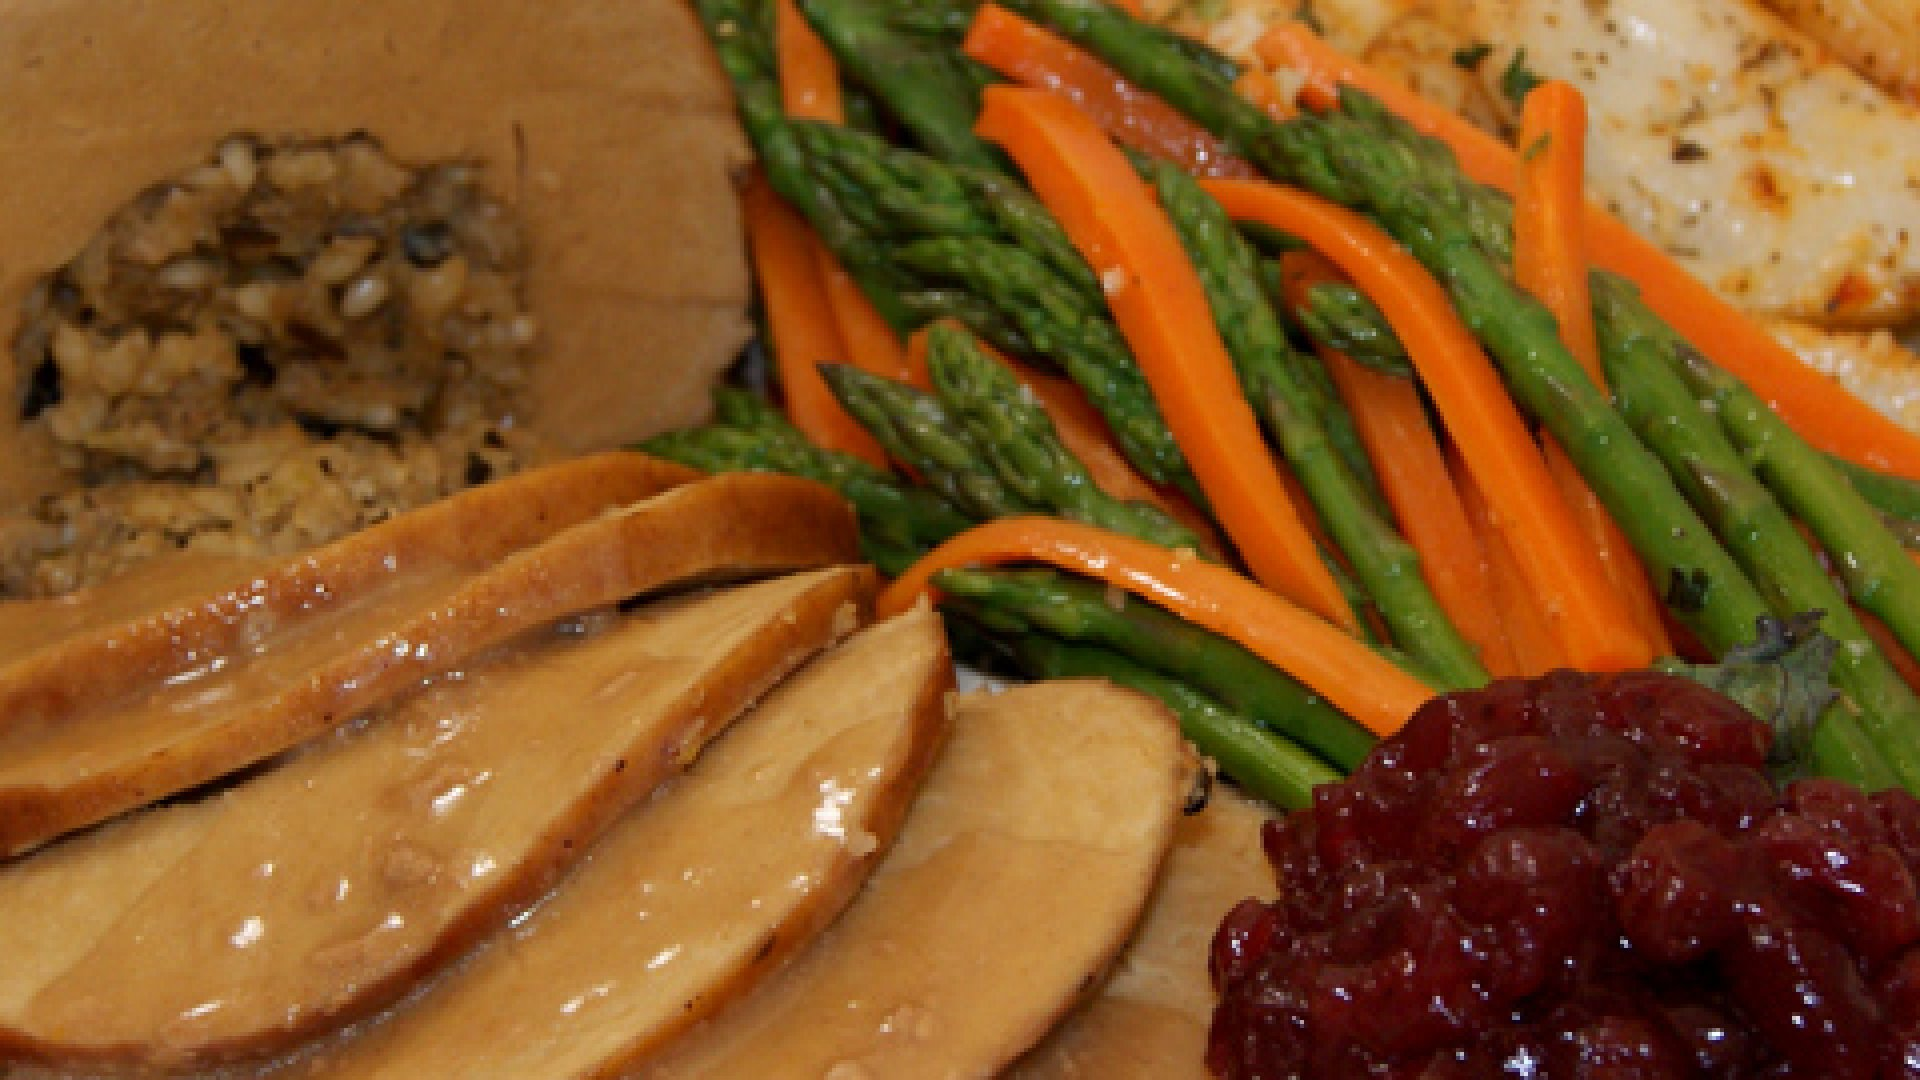 <strong>GOBBLE, GOBBLE</strong>: Serving up a crockpot Tofurky with a holiday feast.